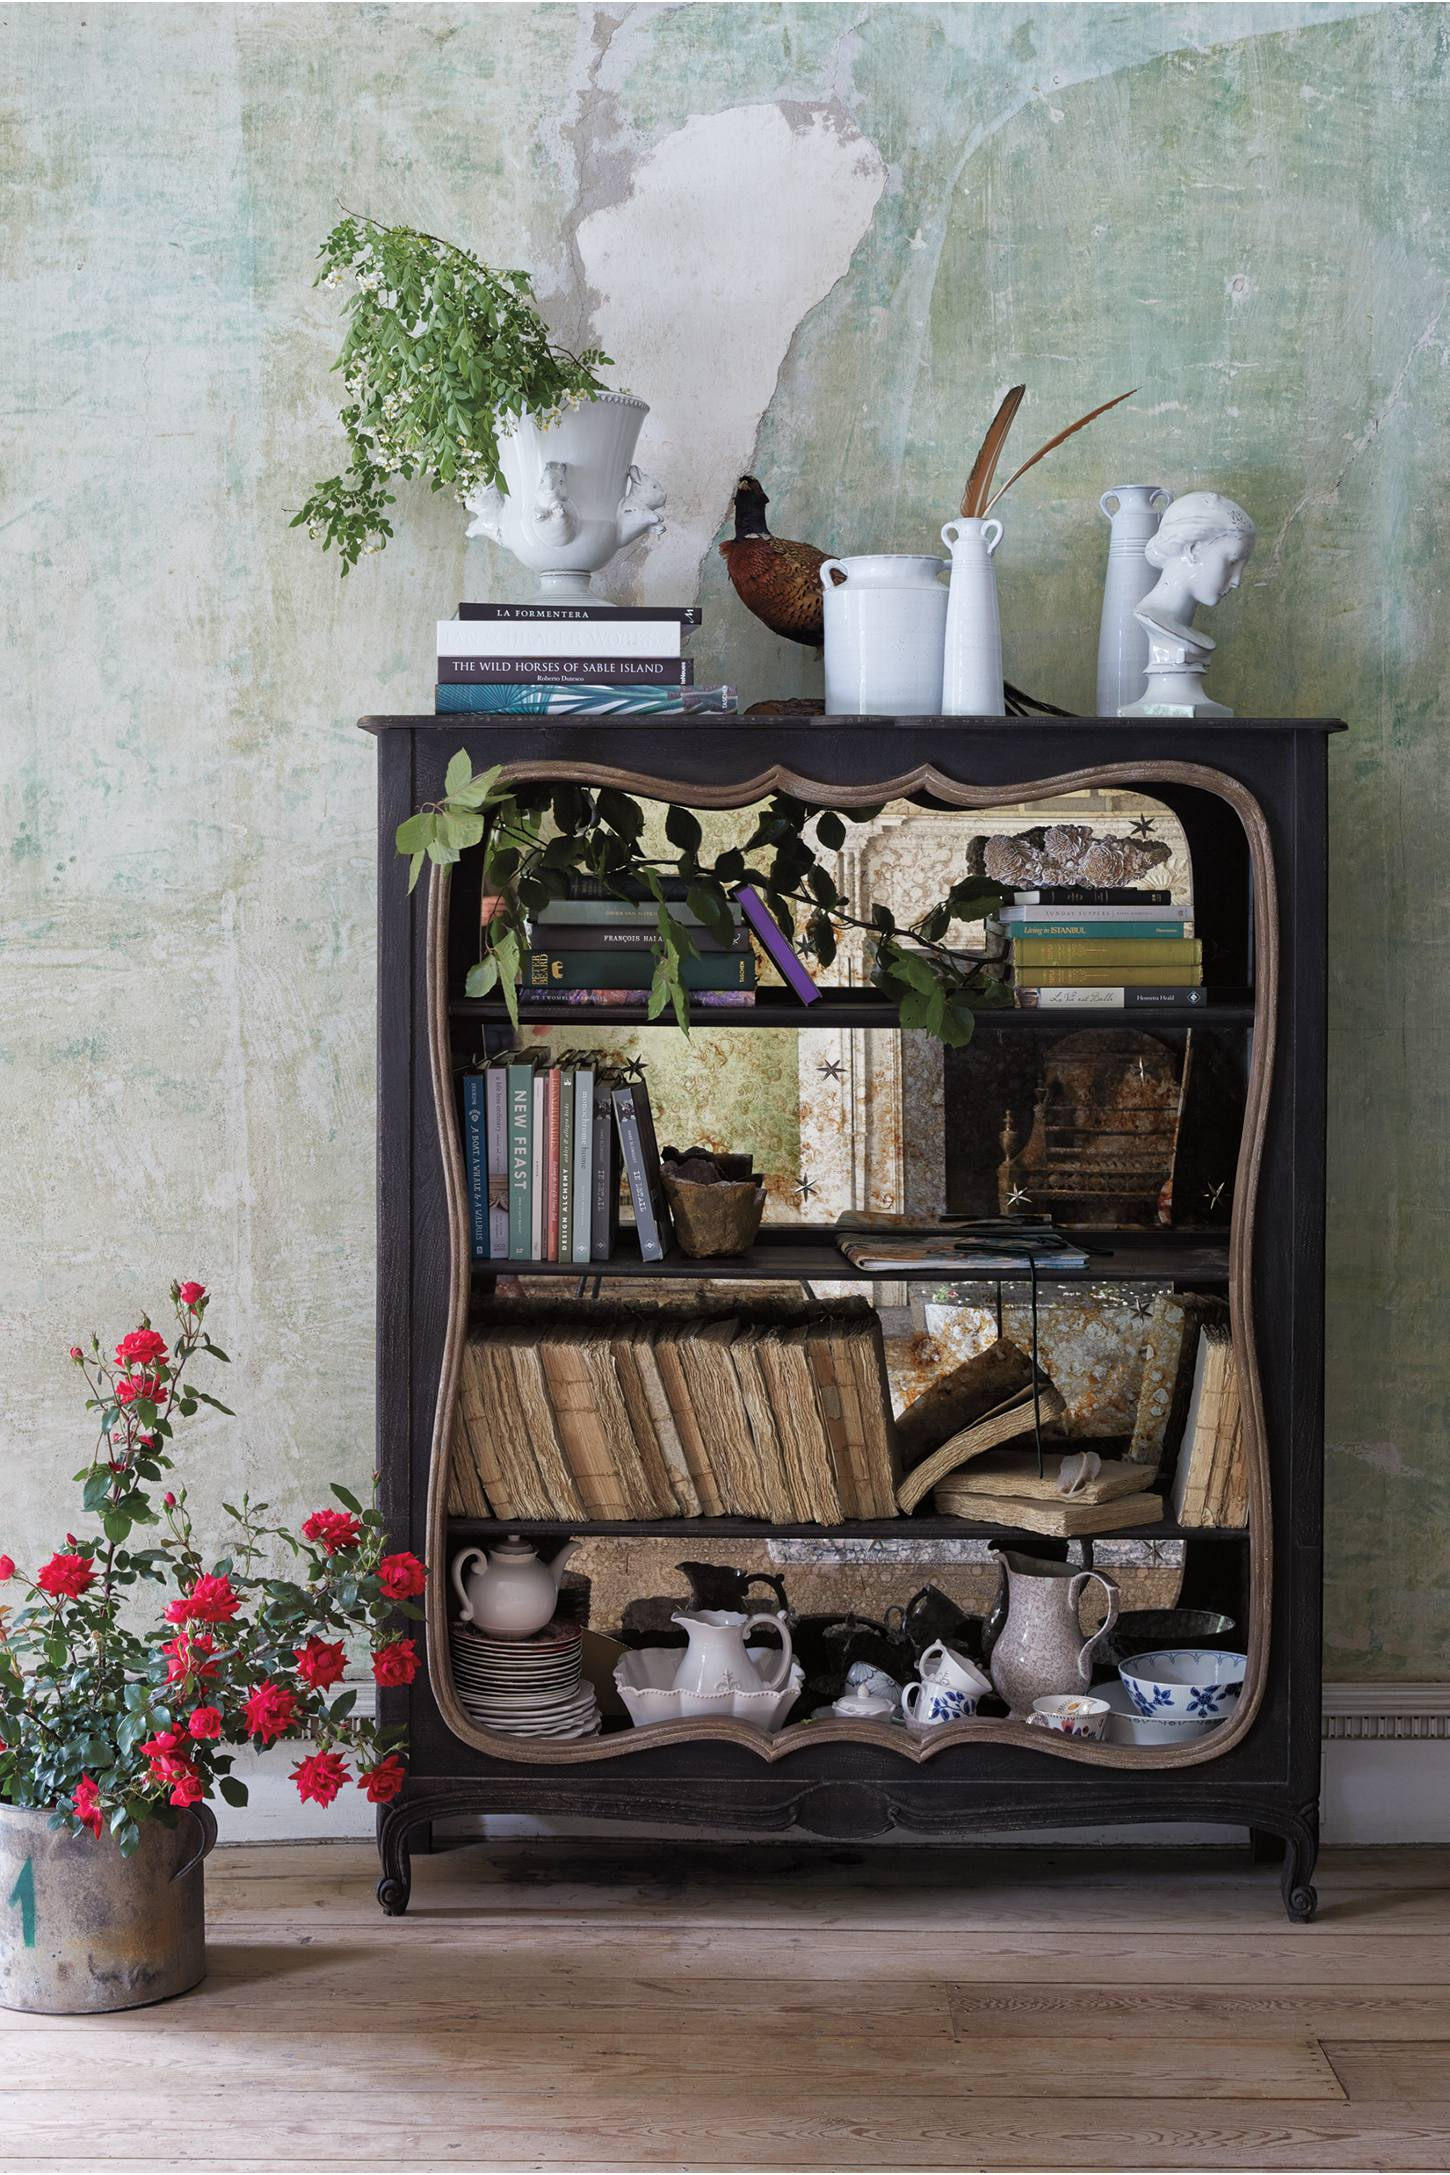 Shabby mirrored bookcase